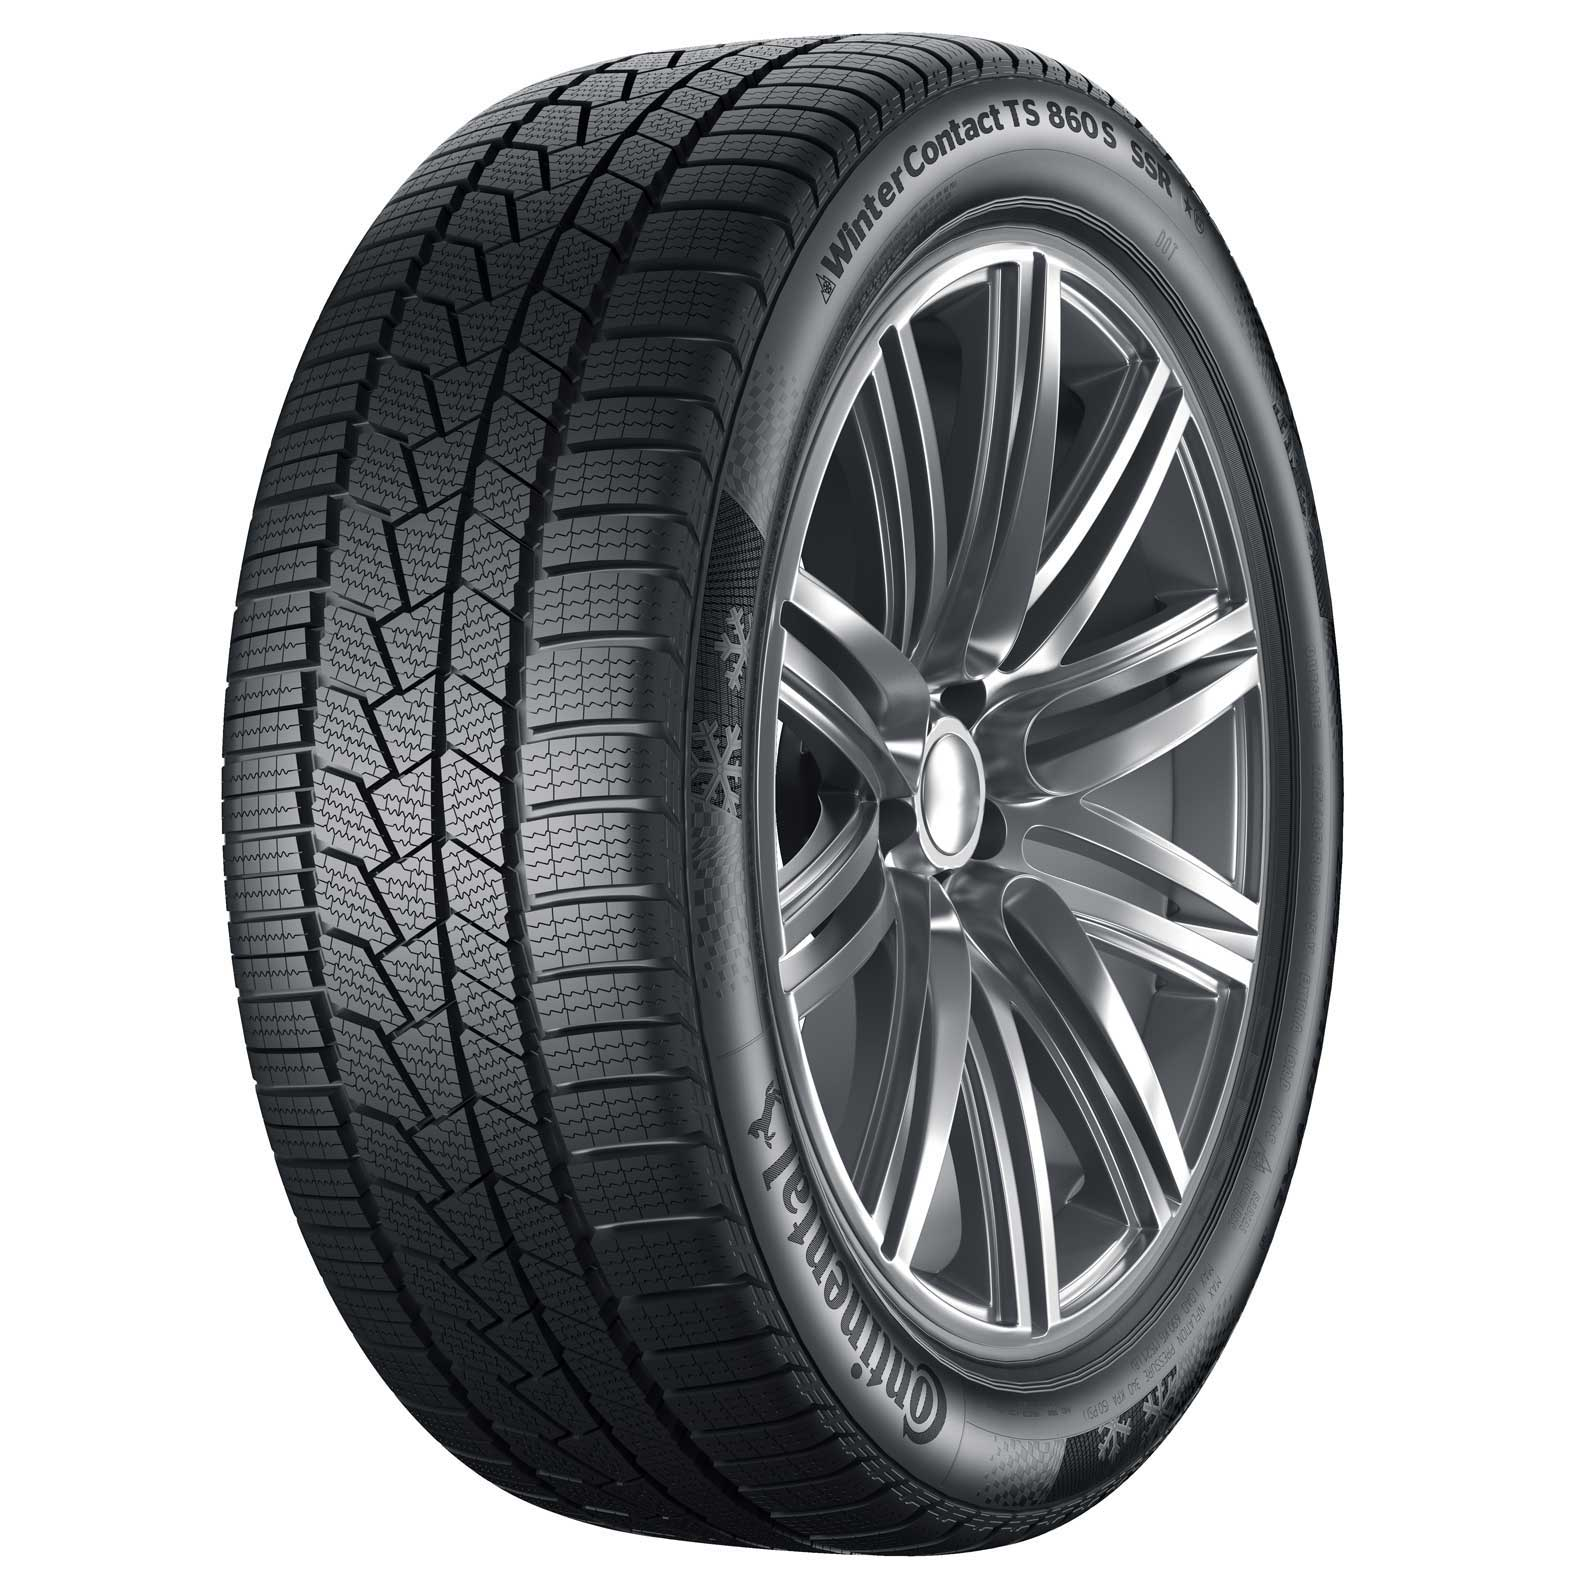 Continental WINTERCONTACT TS860 S tire - angle